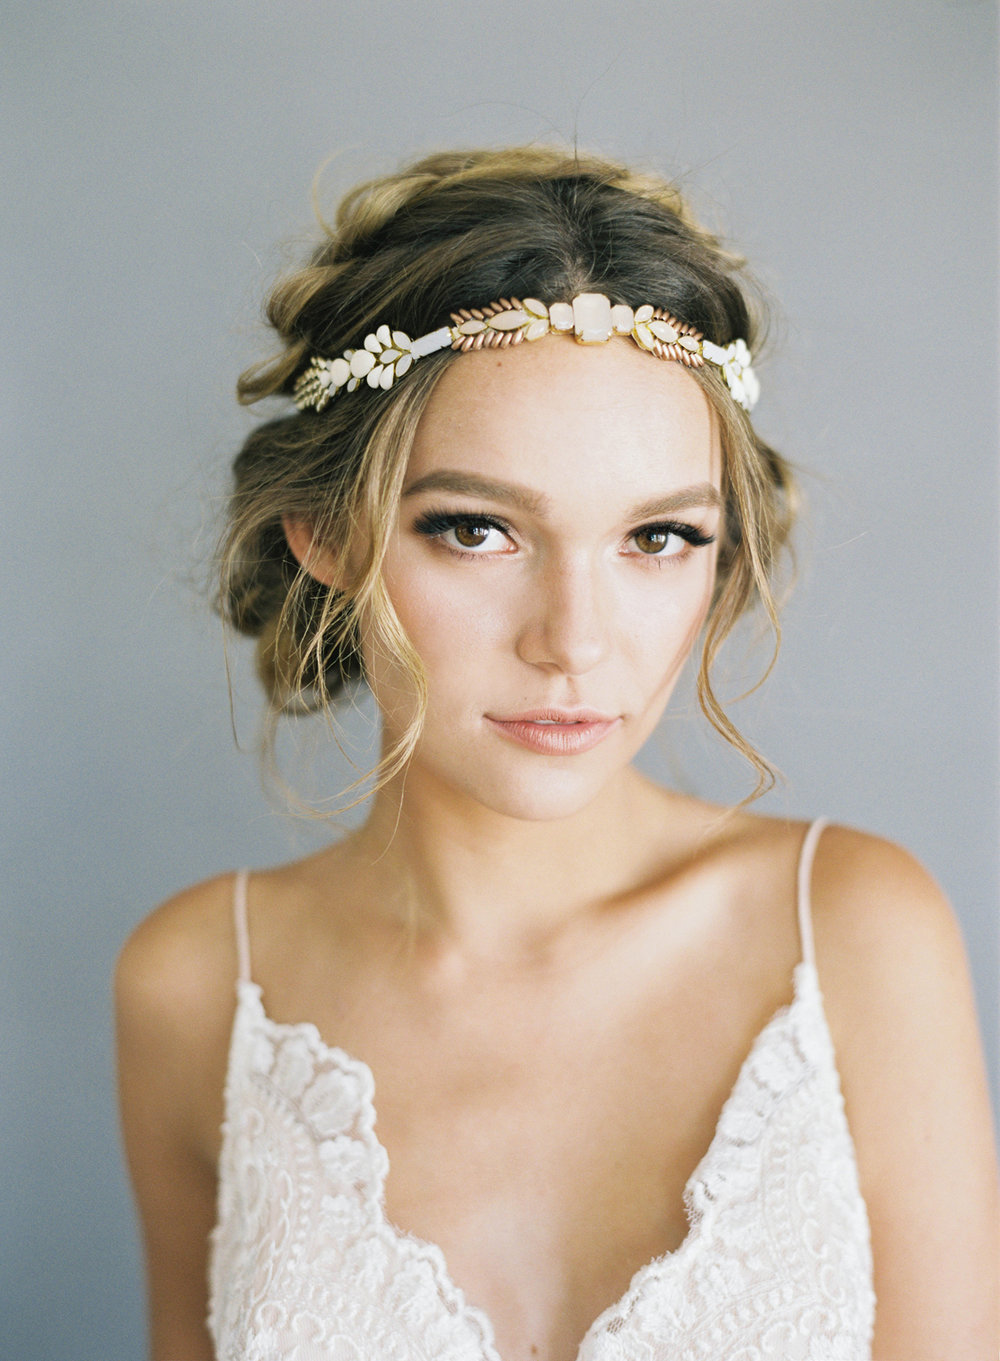 Hushed Commotion, Jen Huang, Piper blush beaded head piece.jpg